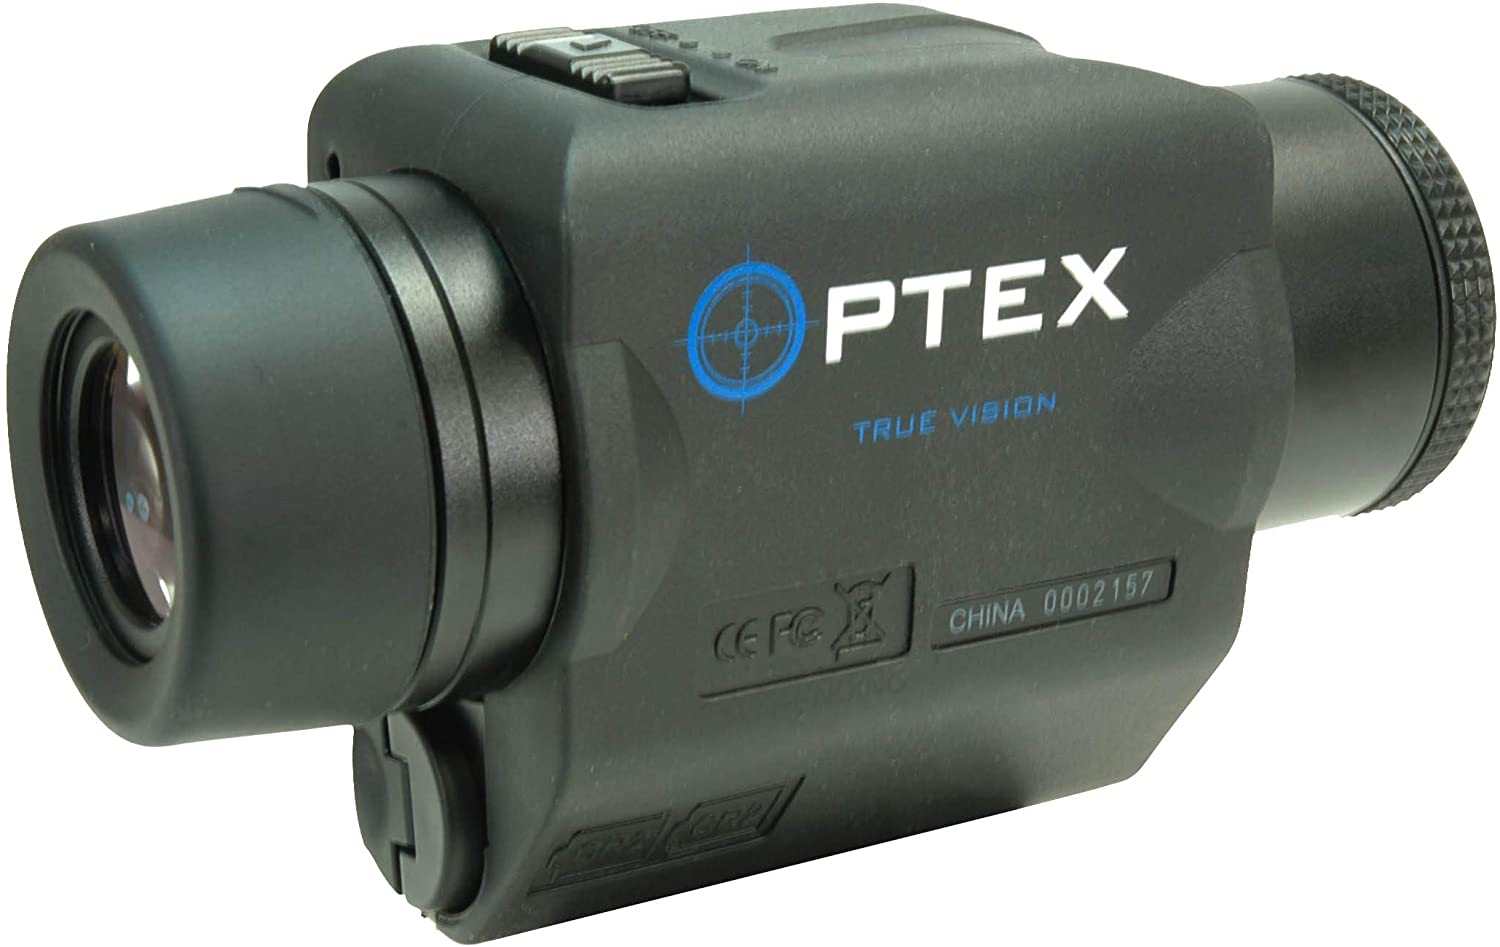 10X Stabilized Monocular